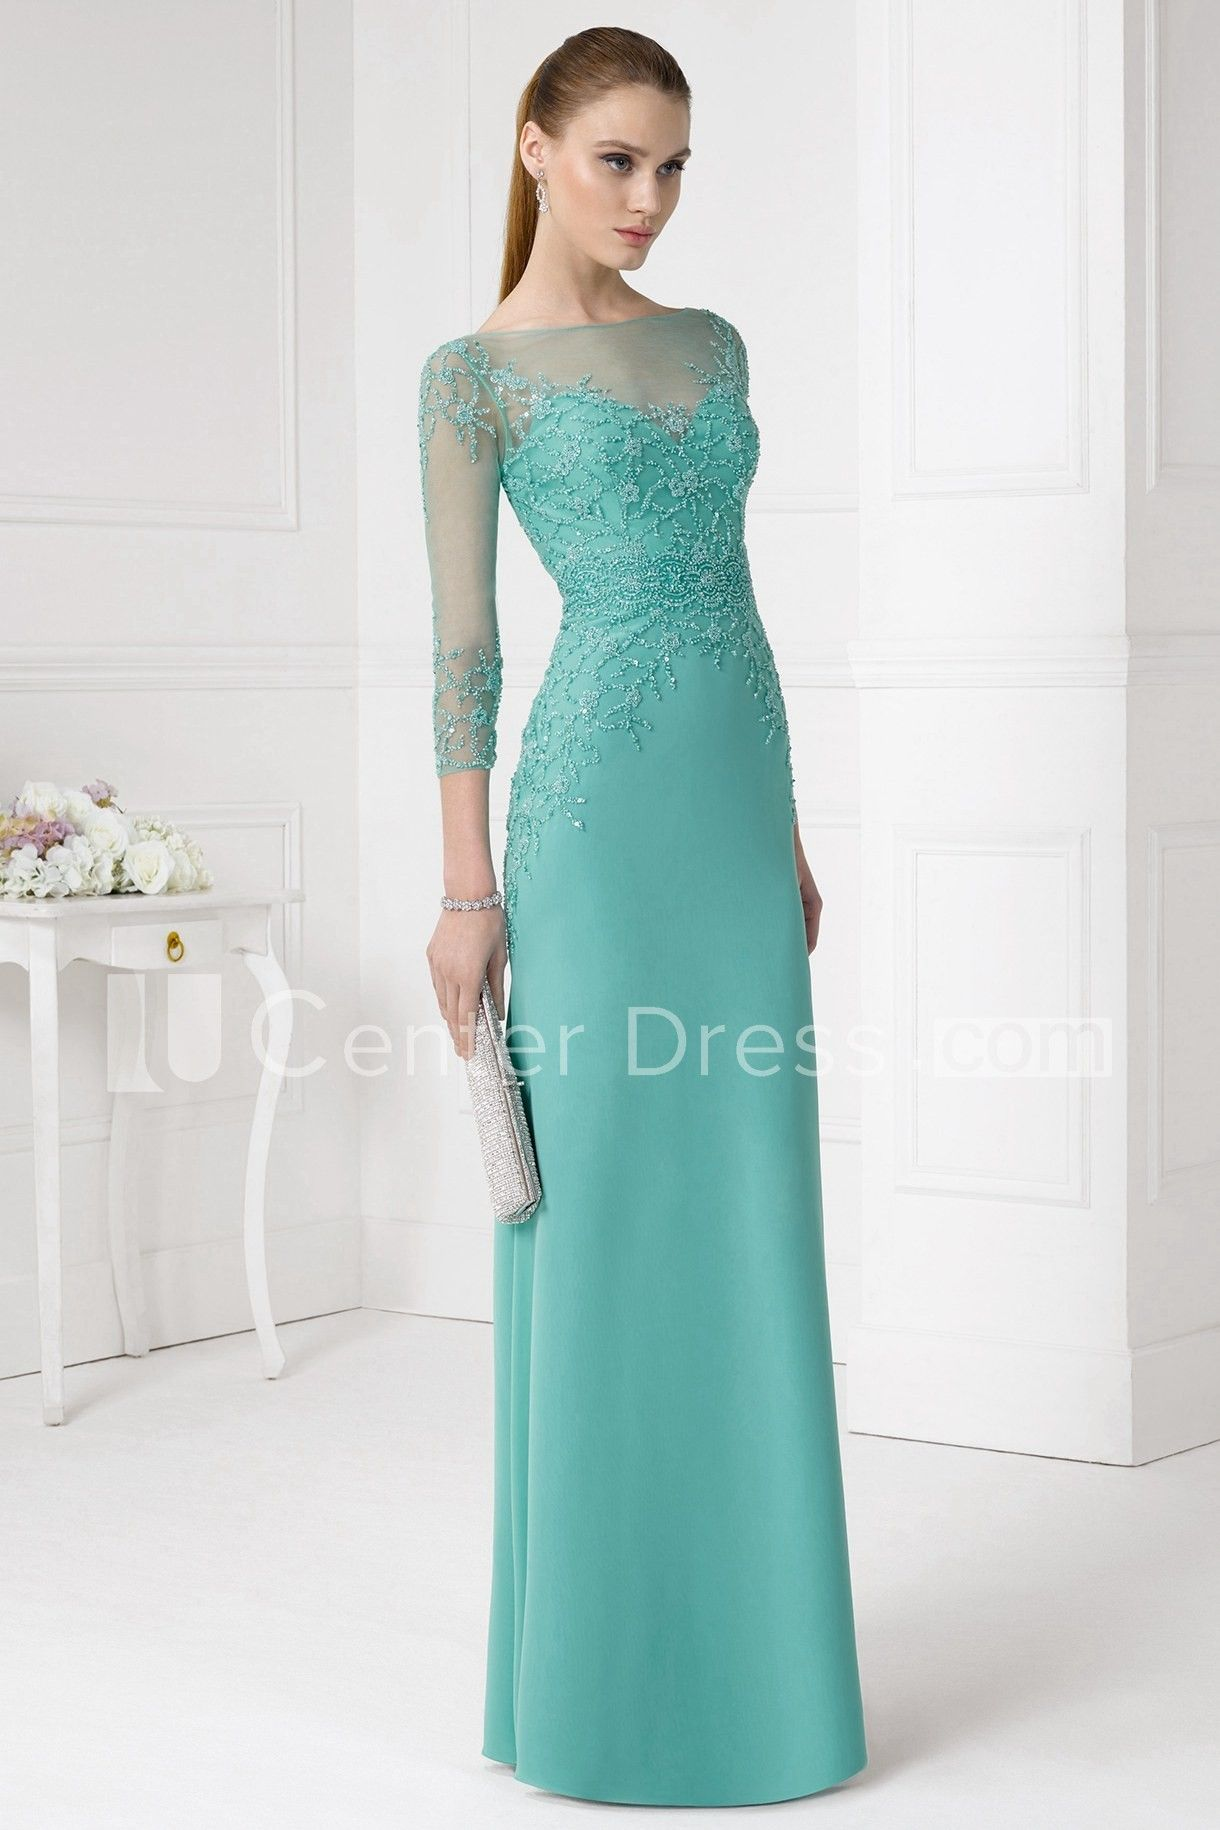 f6e7c8e1a3fc ... wedding dresses and evening gowns. $123.09-Elegant Sheath Beaded Jewel-Neck  Long Jersey Green Long Mother of the Groom